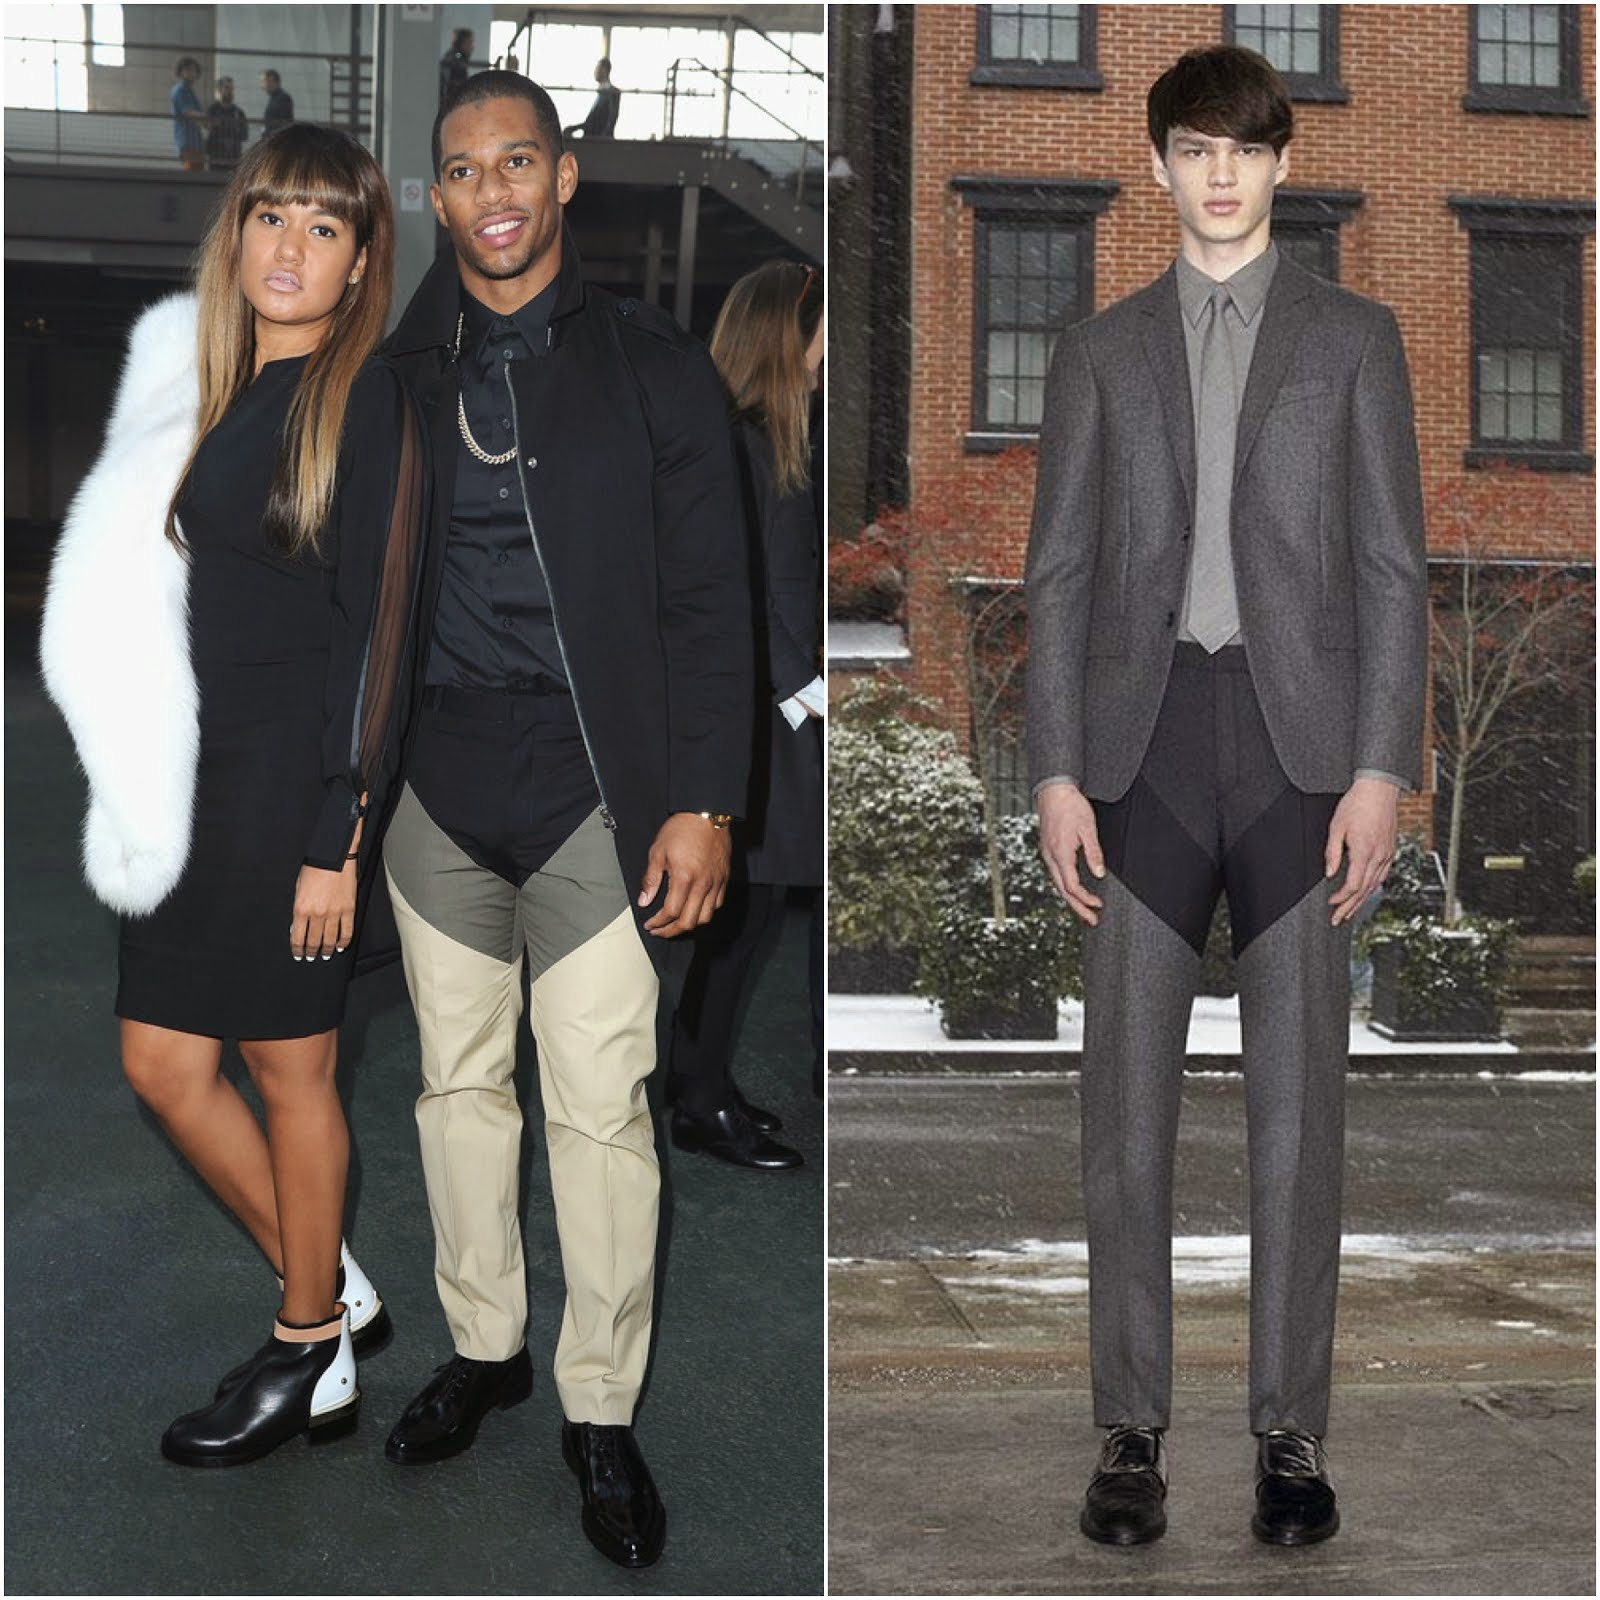 Victor Cruz in Givenchy - Givenchy Menswear Fall Winter 2014 Show, #PFW